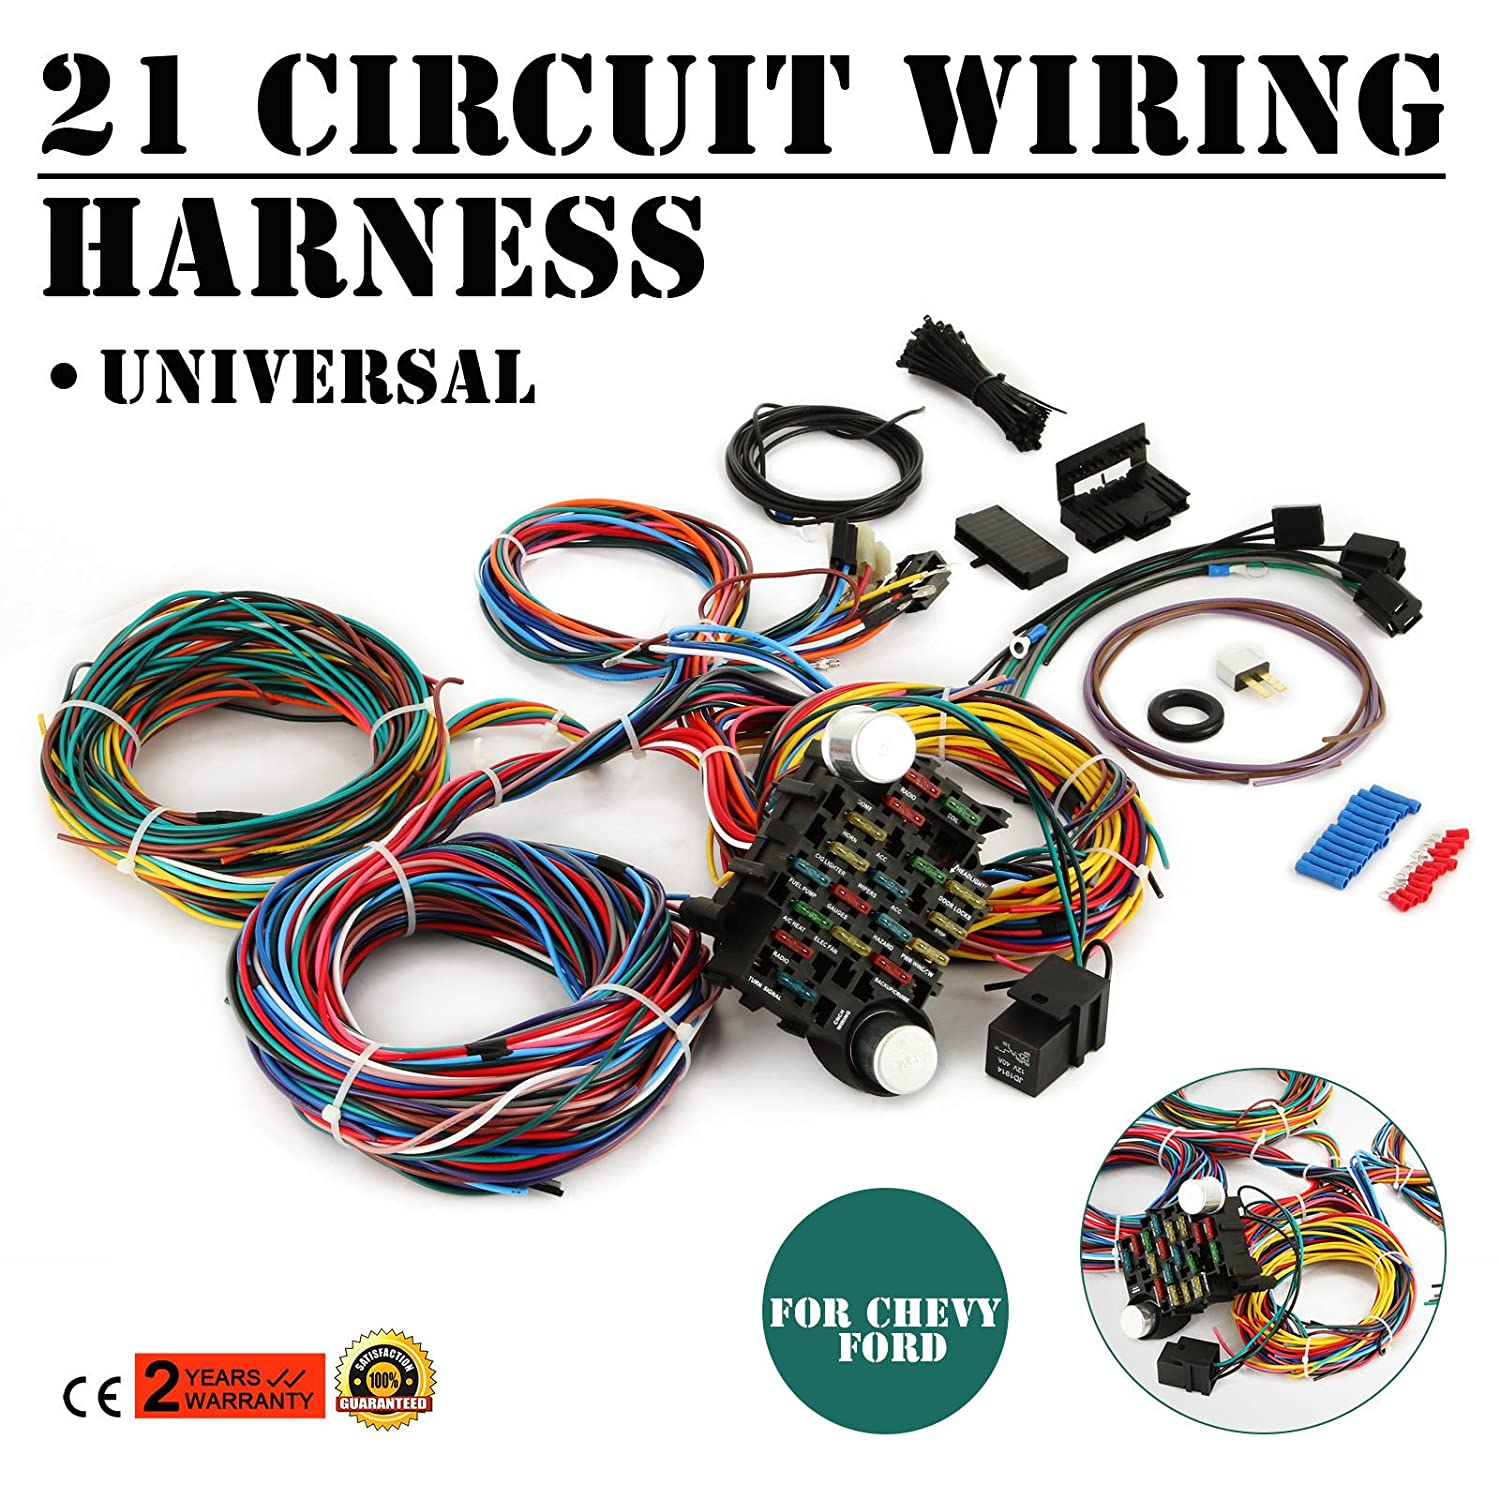 Mophorn 21 Circuit Wiring Harness Kit Long Wires Jeep Universal Standard Color For Chevy Mopar Hotrods Ford Chrysler Automotive